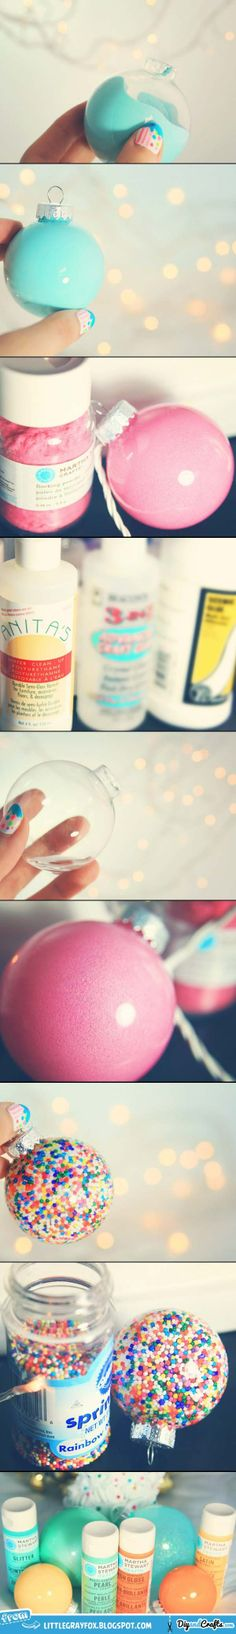 Simple Filled and Painted Christmas Ornaments | DIY